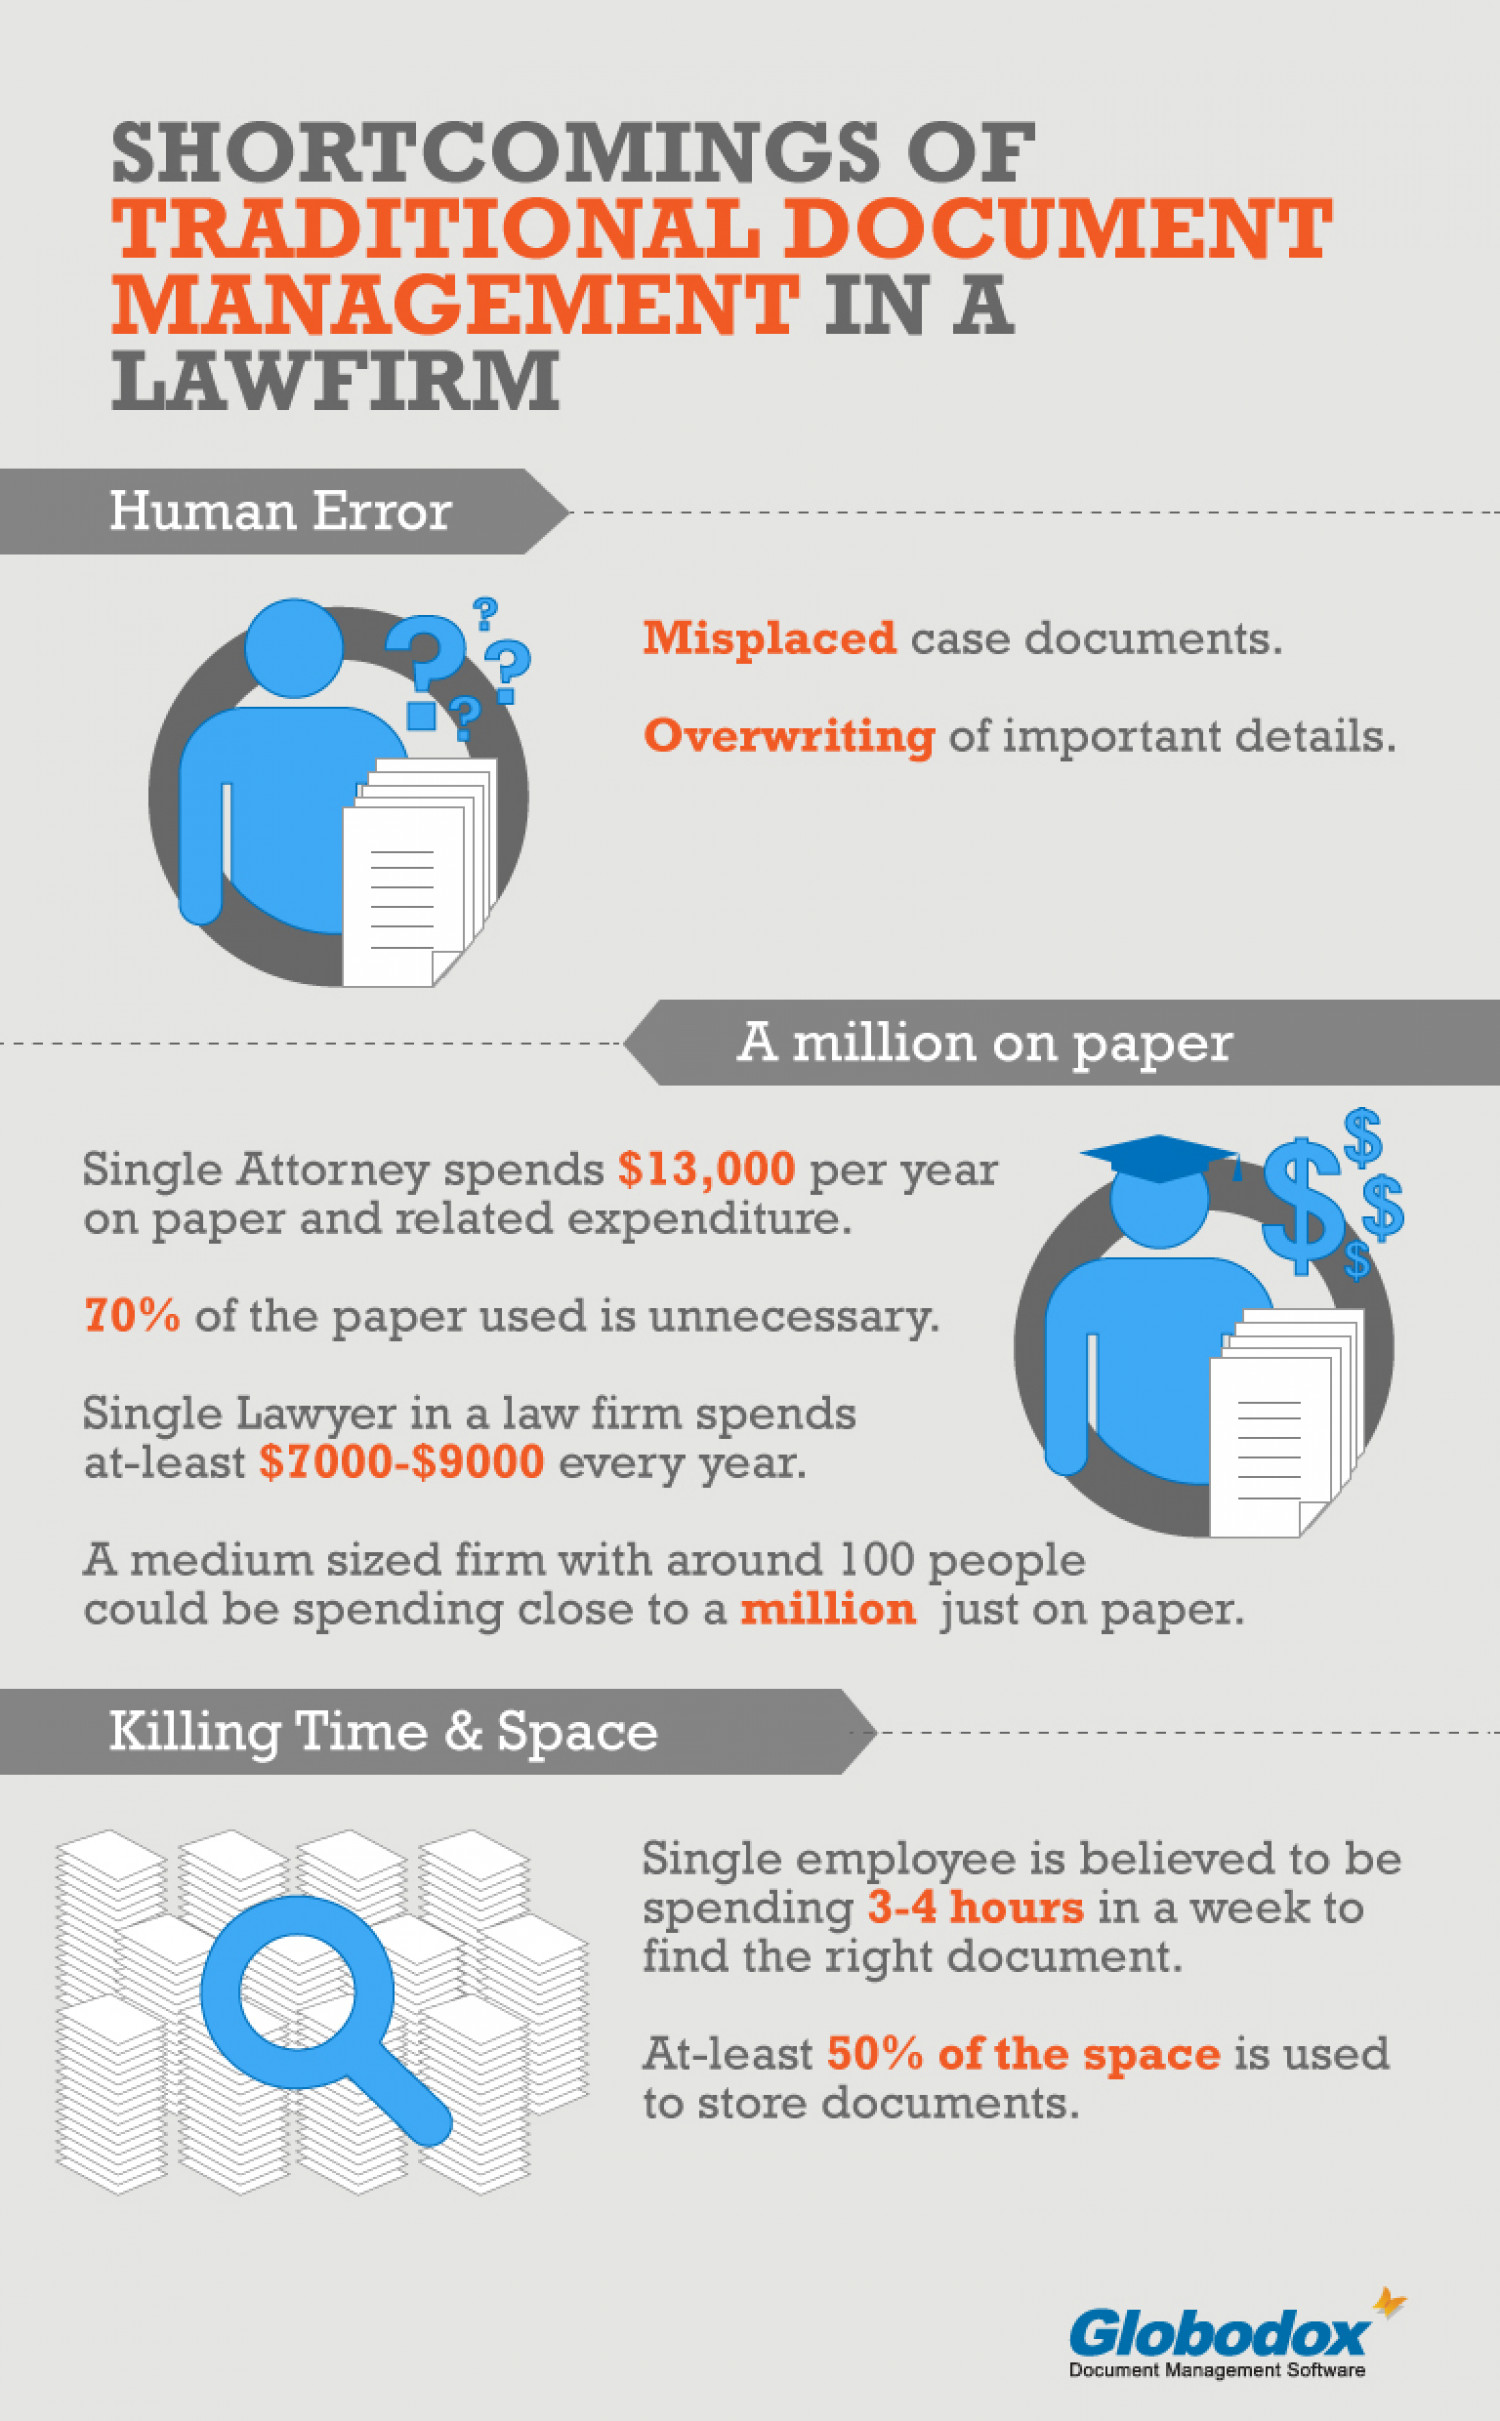 Shortcomings of traditional document management system used in law firms Infographic